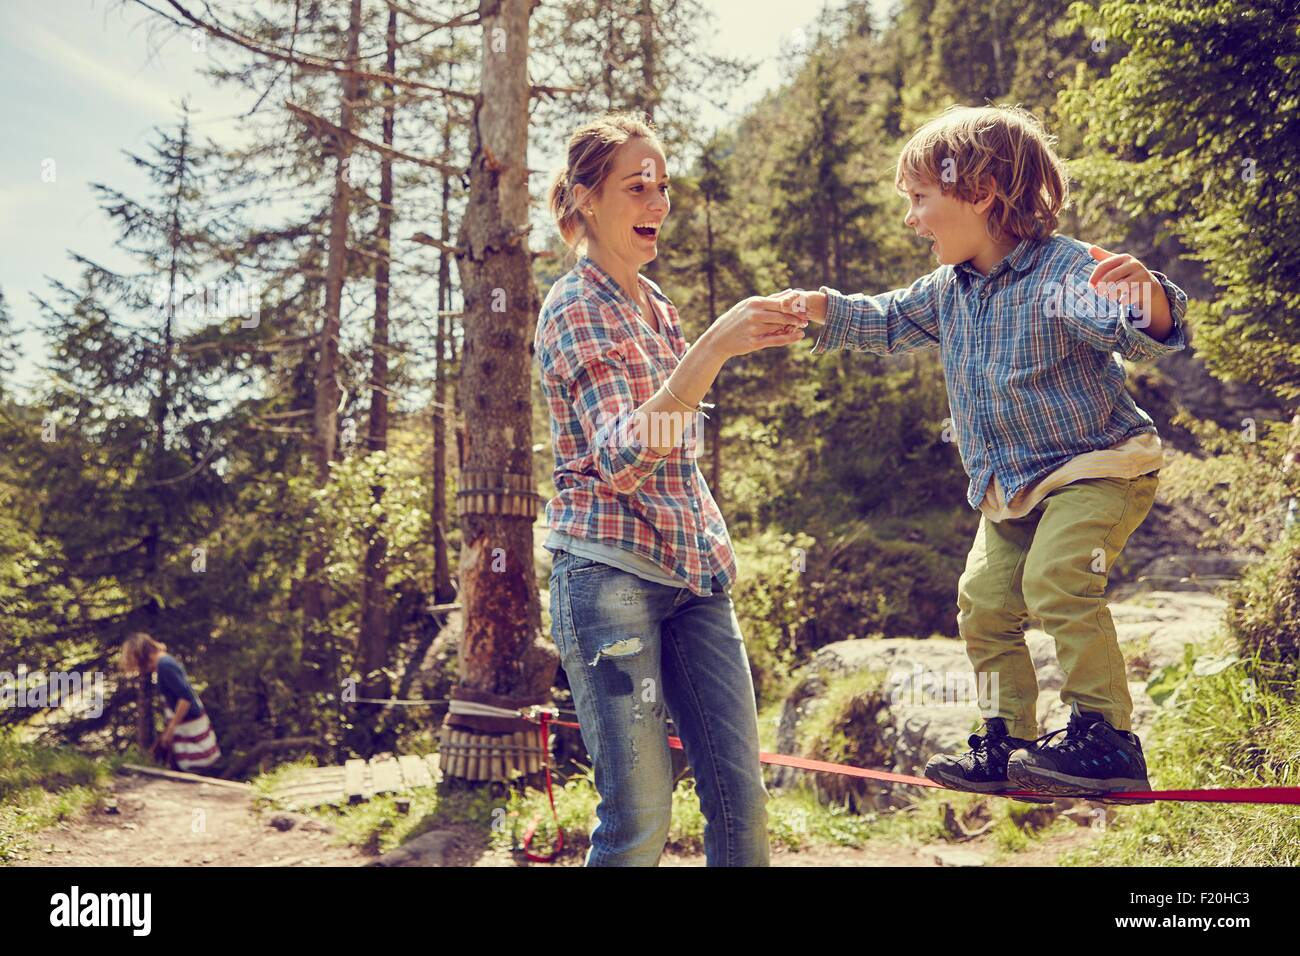 Boy balancing on rope with help from mother, Ehrwald, Tyrol, Austria - Stock Image